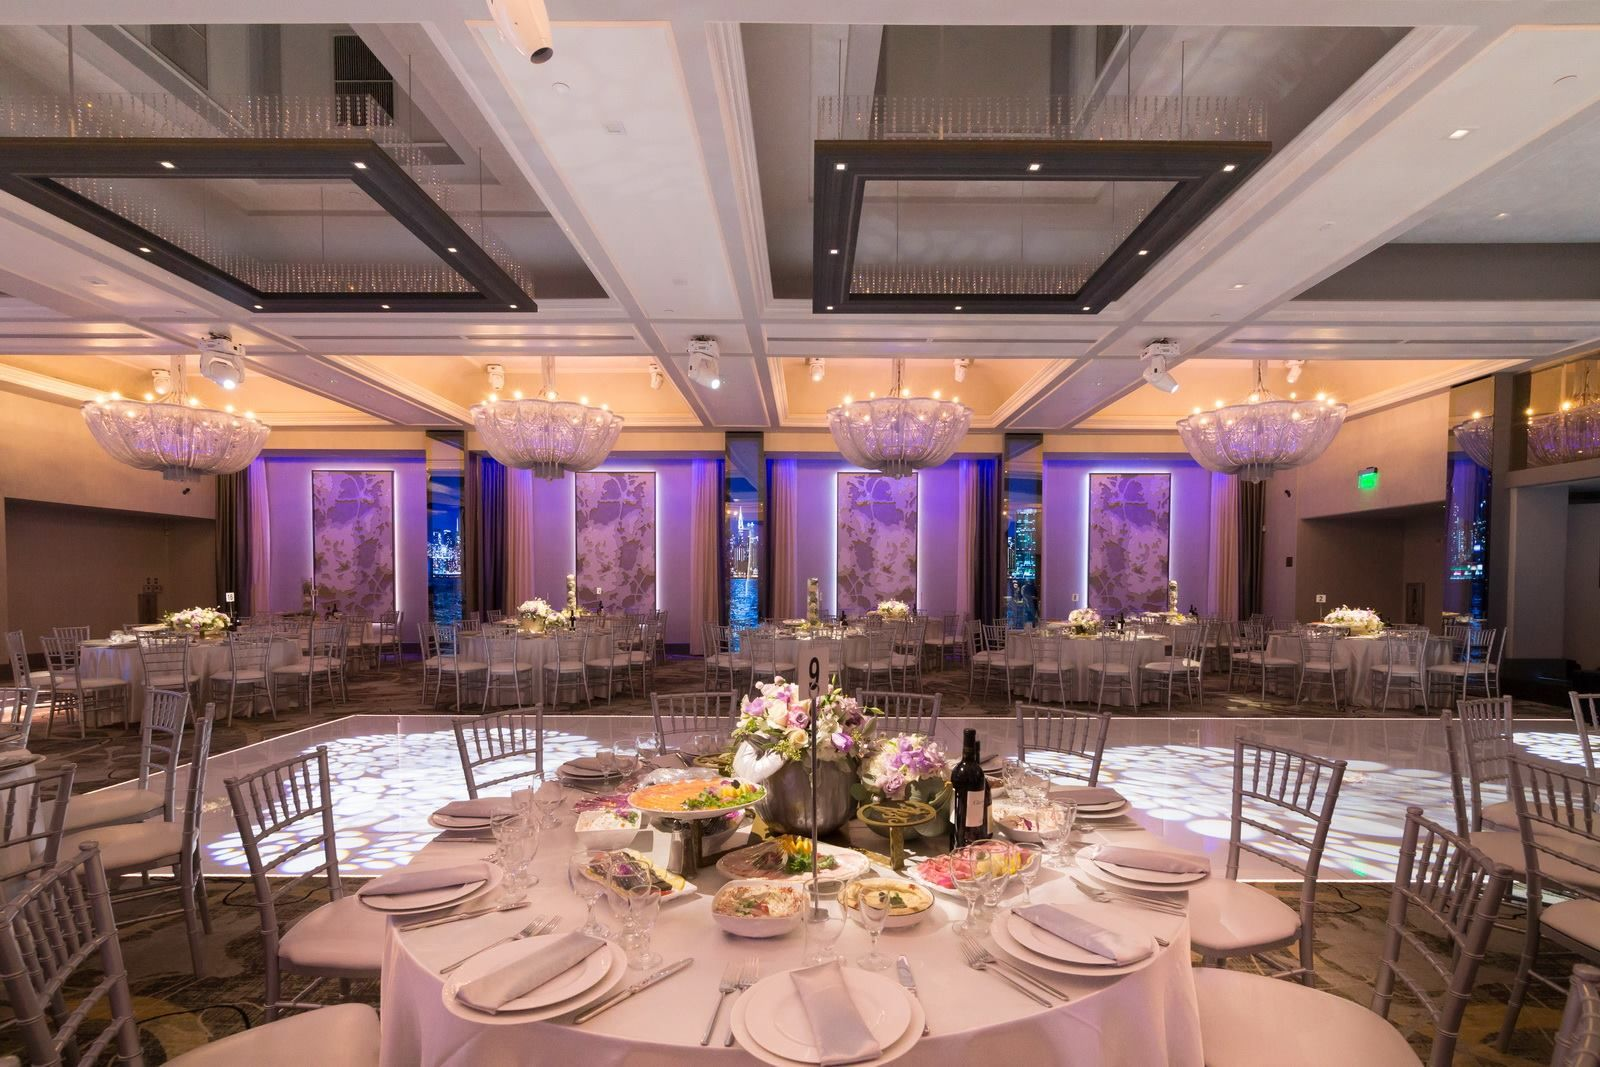 Searching For A Modern Elegant Setting For Your Wedding Contact Us To Tour The Beautiful Legacy Ballroom Ballroom Blue Hues Banquet